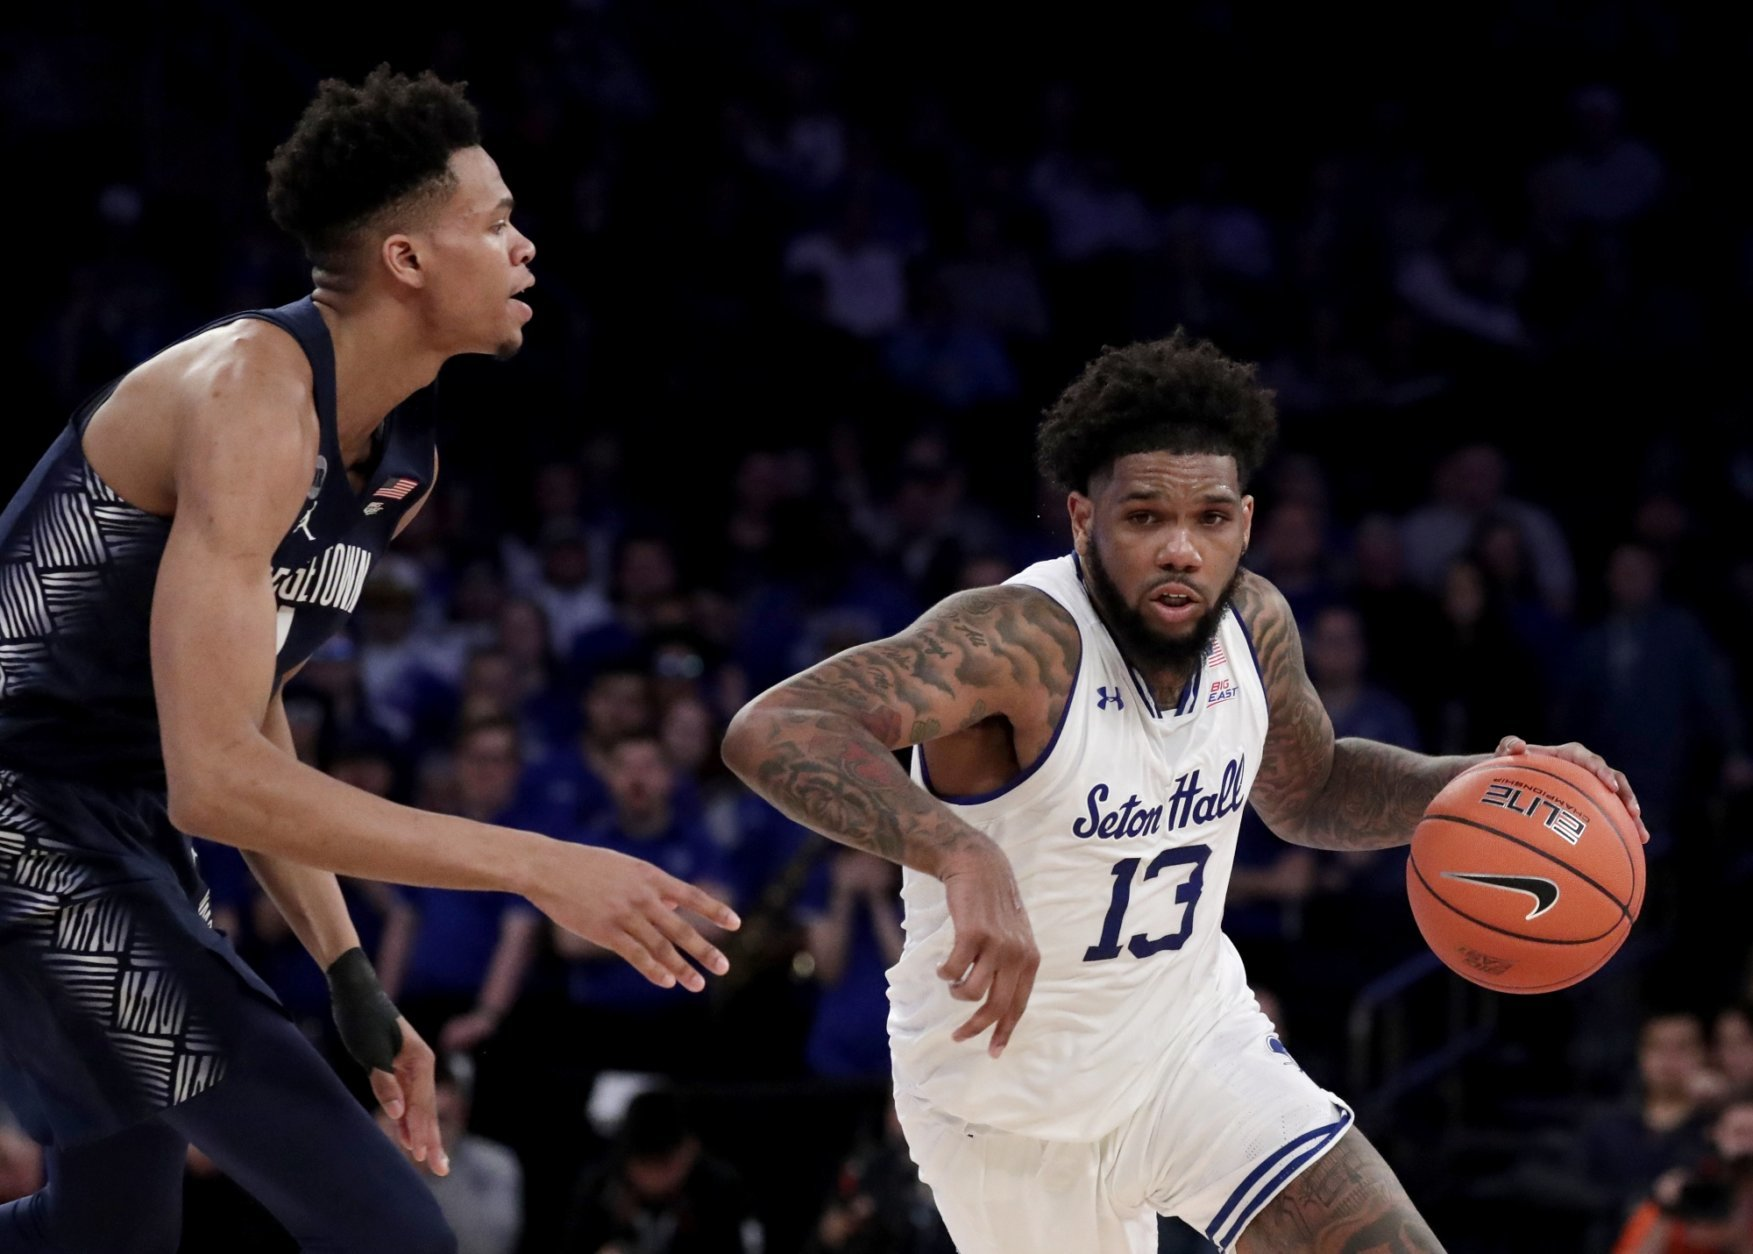 Seton Hall guard Myles Powell (13) drives against Georgetown guard Jamorko Pickett during the first half of an NCAA college basketball game in the Big East men's tournament, Thursday, March 14, 2019, in New York. (AP Photo/Julio Cortez)